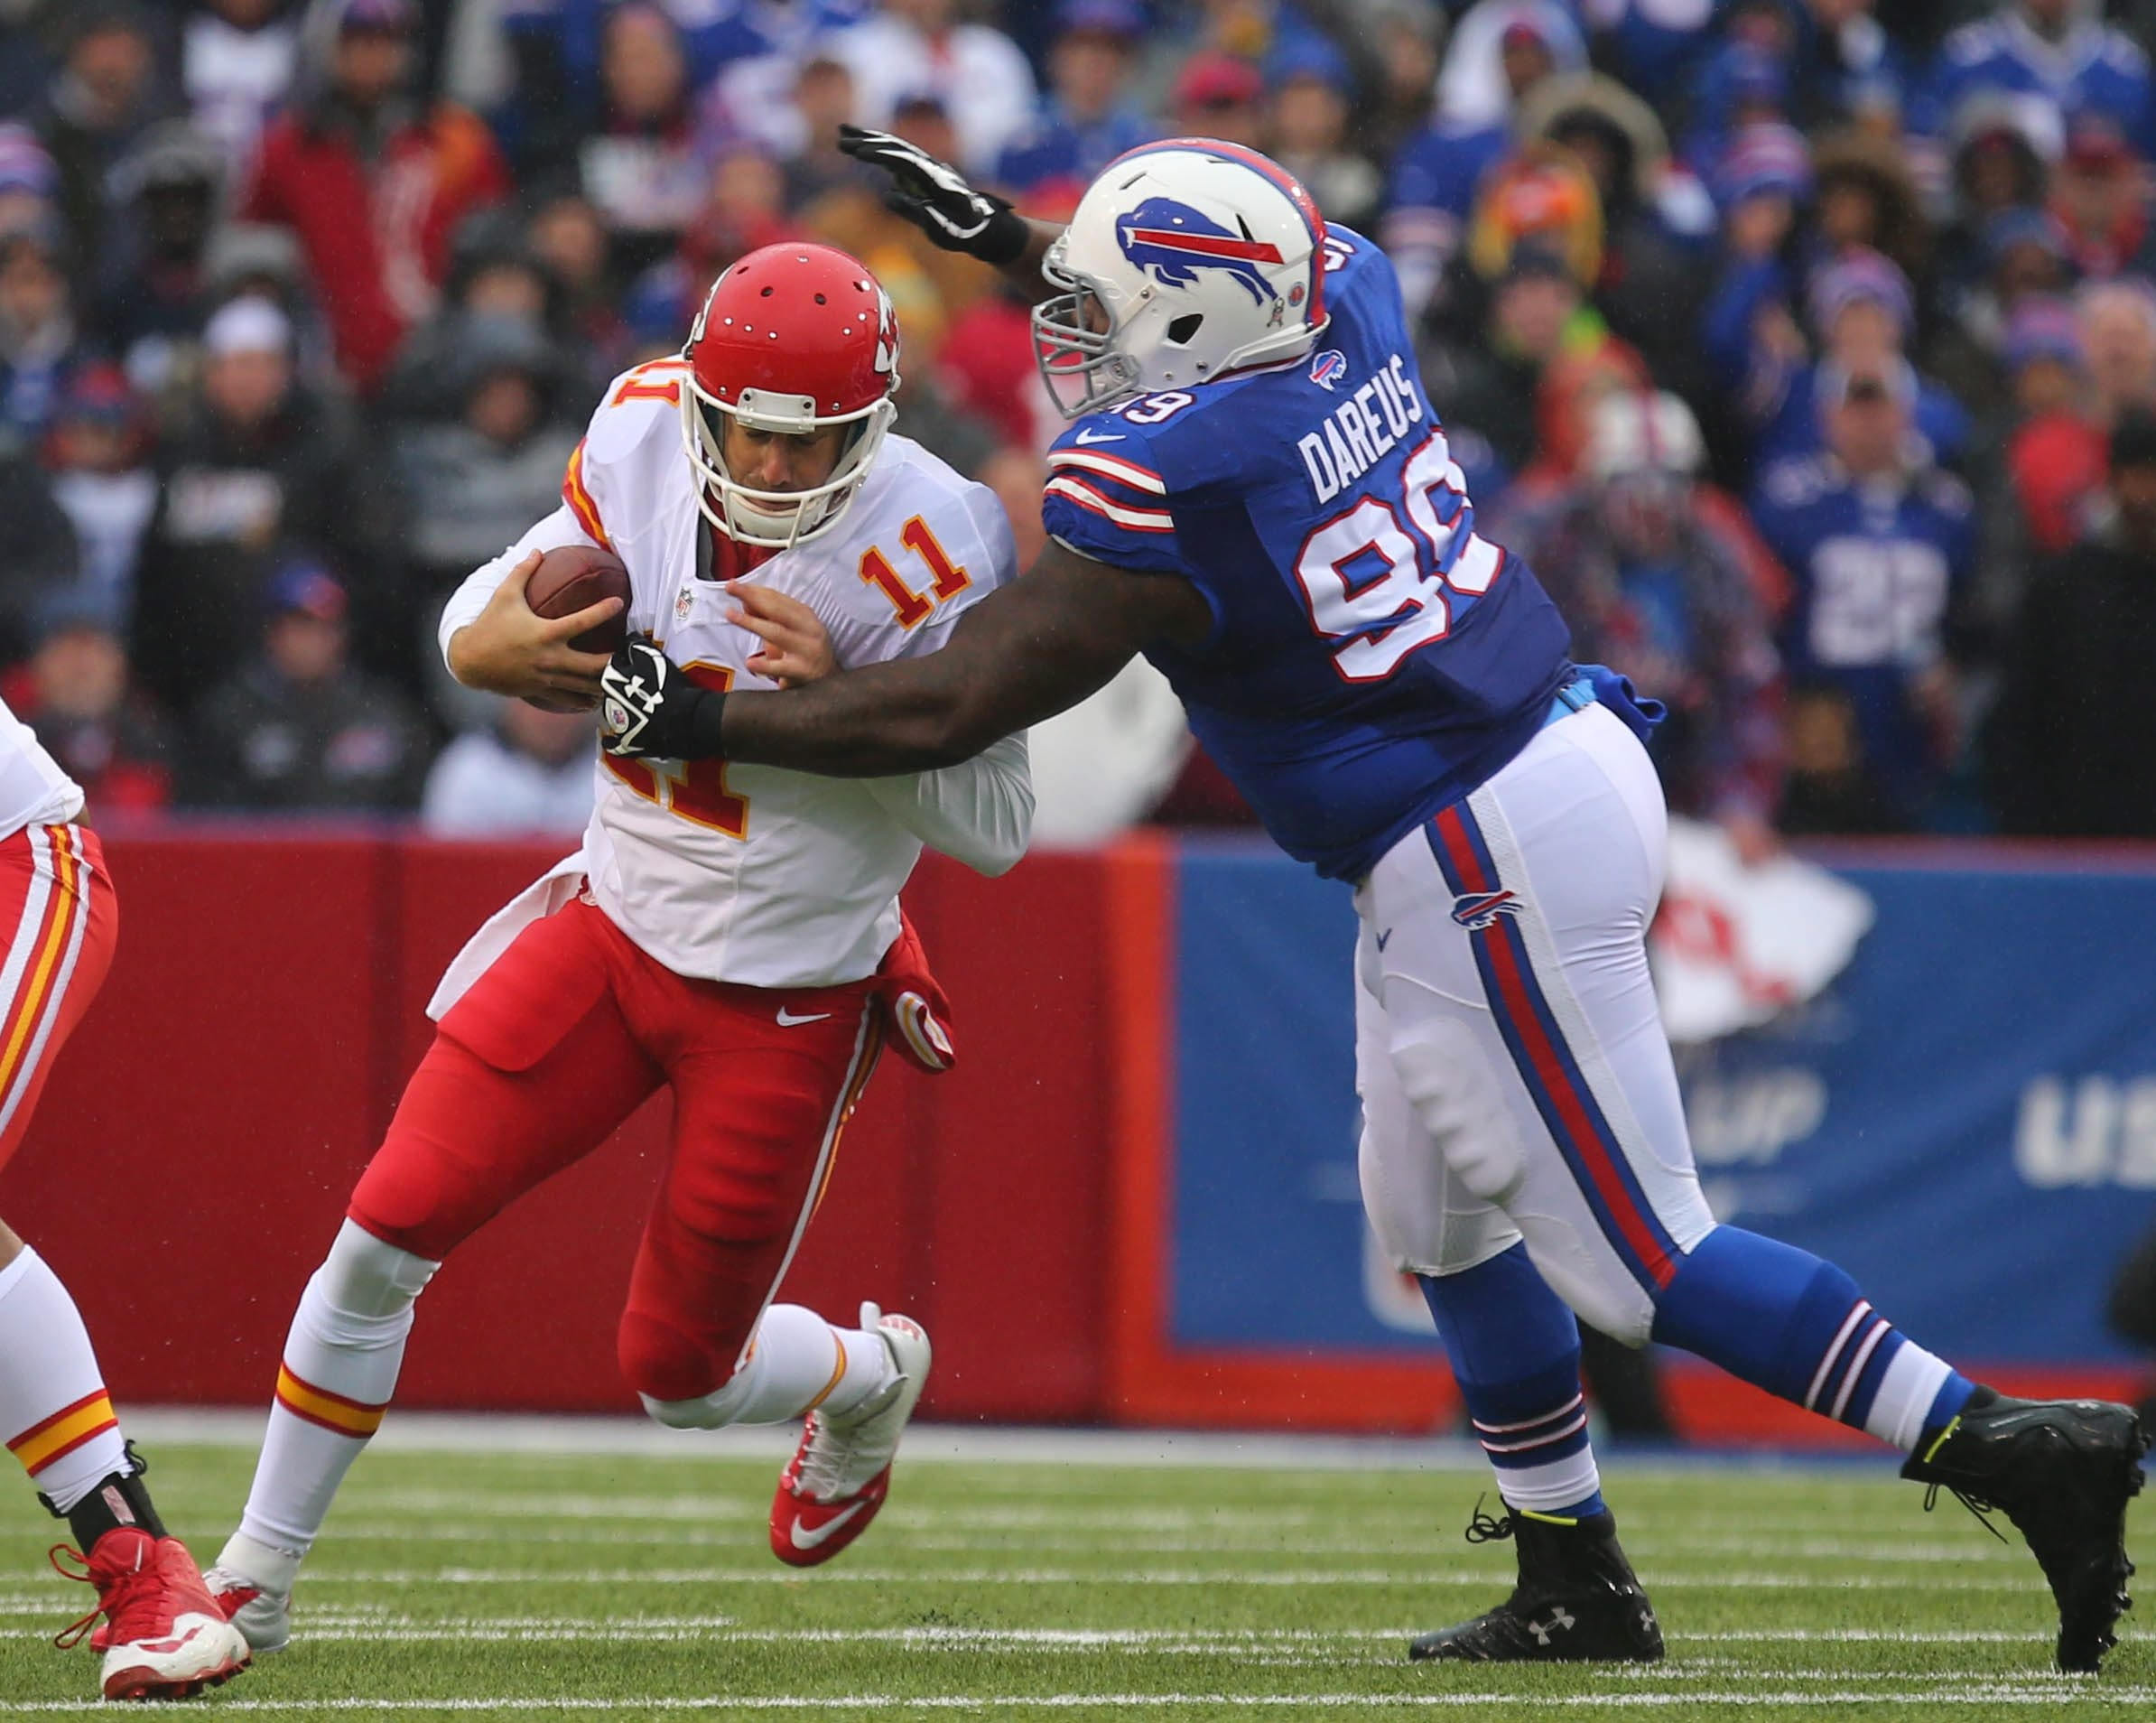 Buffalo Bills defensive tackle Marcell Dareus claims that the true difficulty behind his recent missteps is that he has attention deficit hyperactivity disorder.